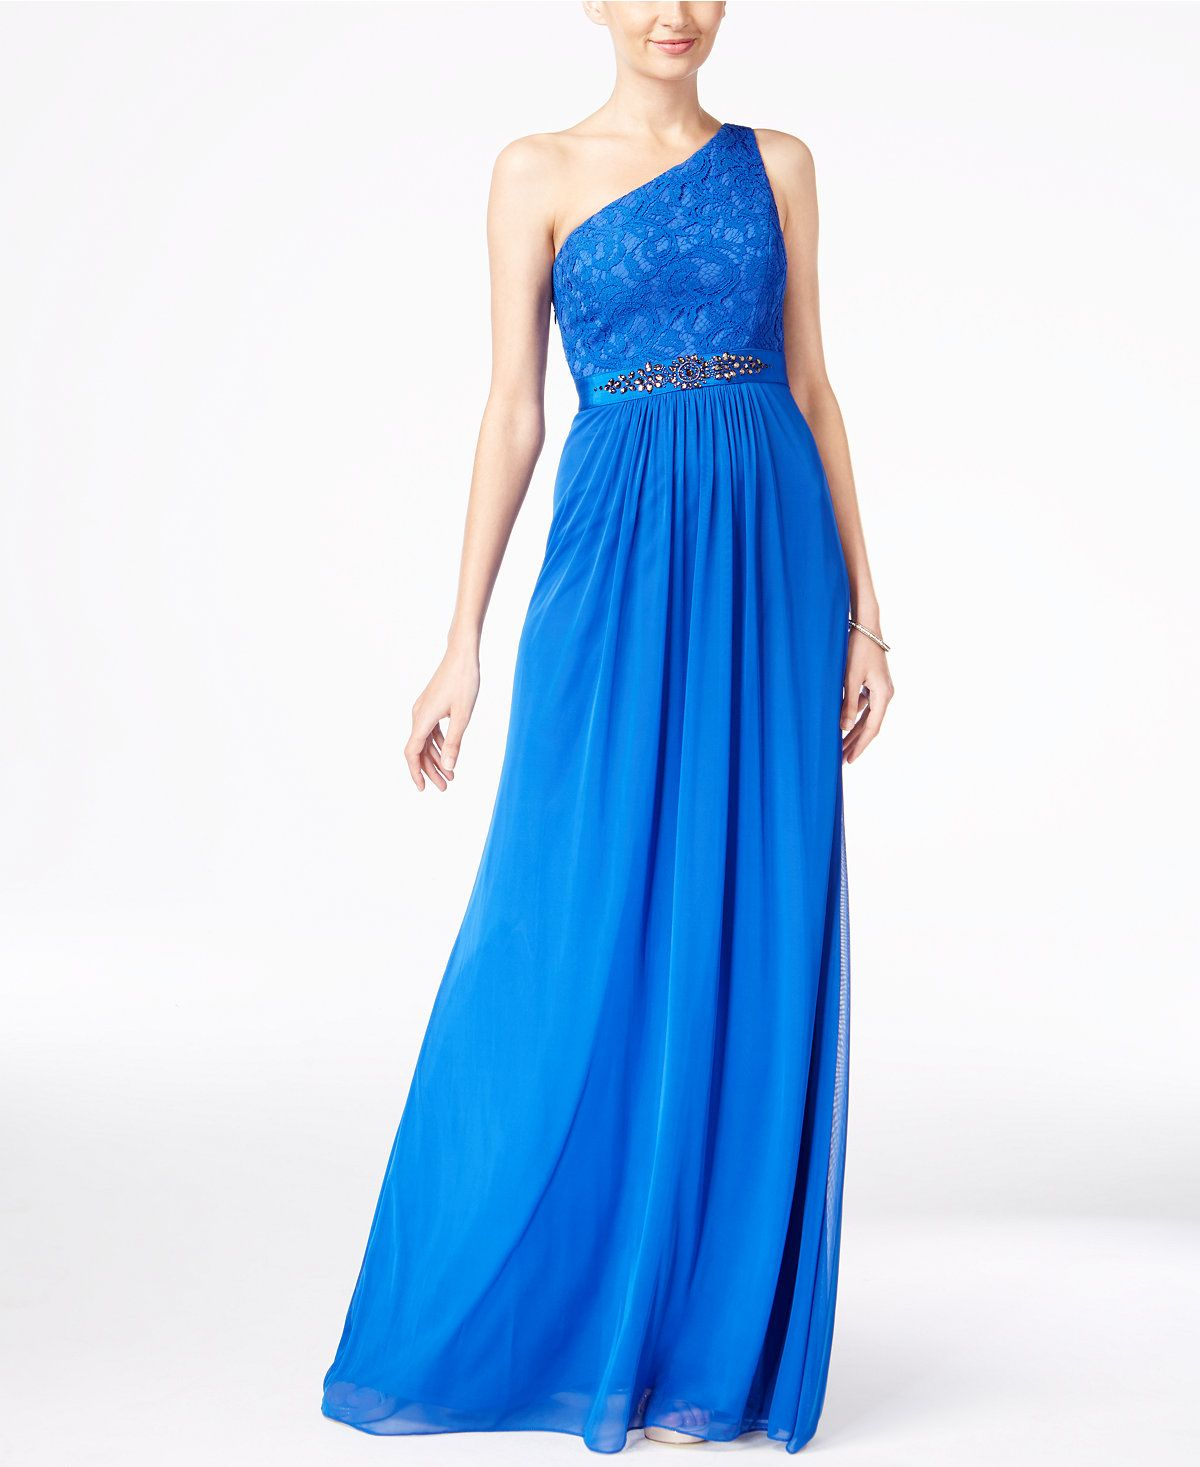 Lace dress royal blue  Adrianna Papell Embellished Lace OneShoulder Gown  Royal blue